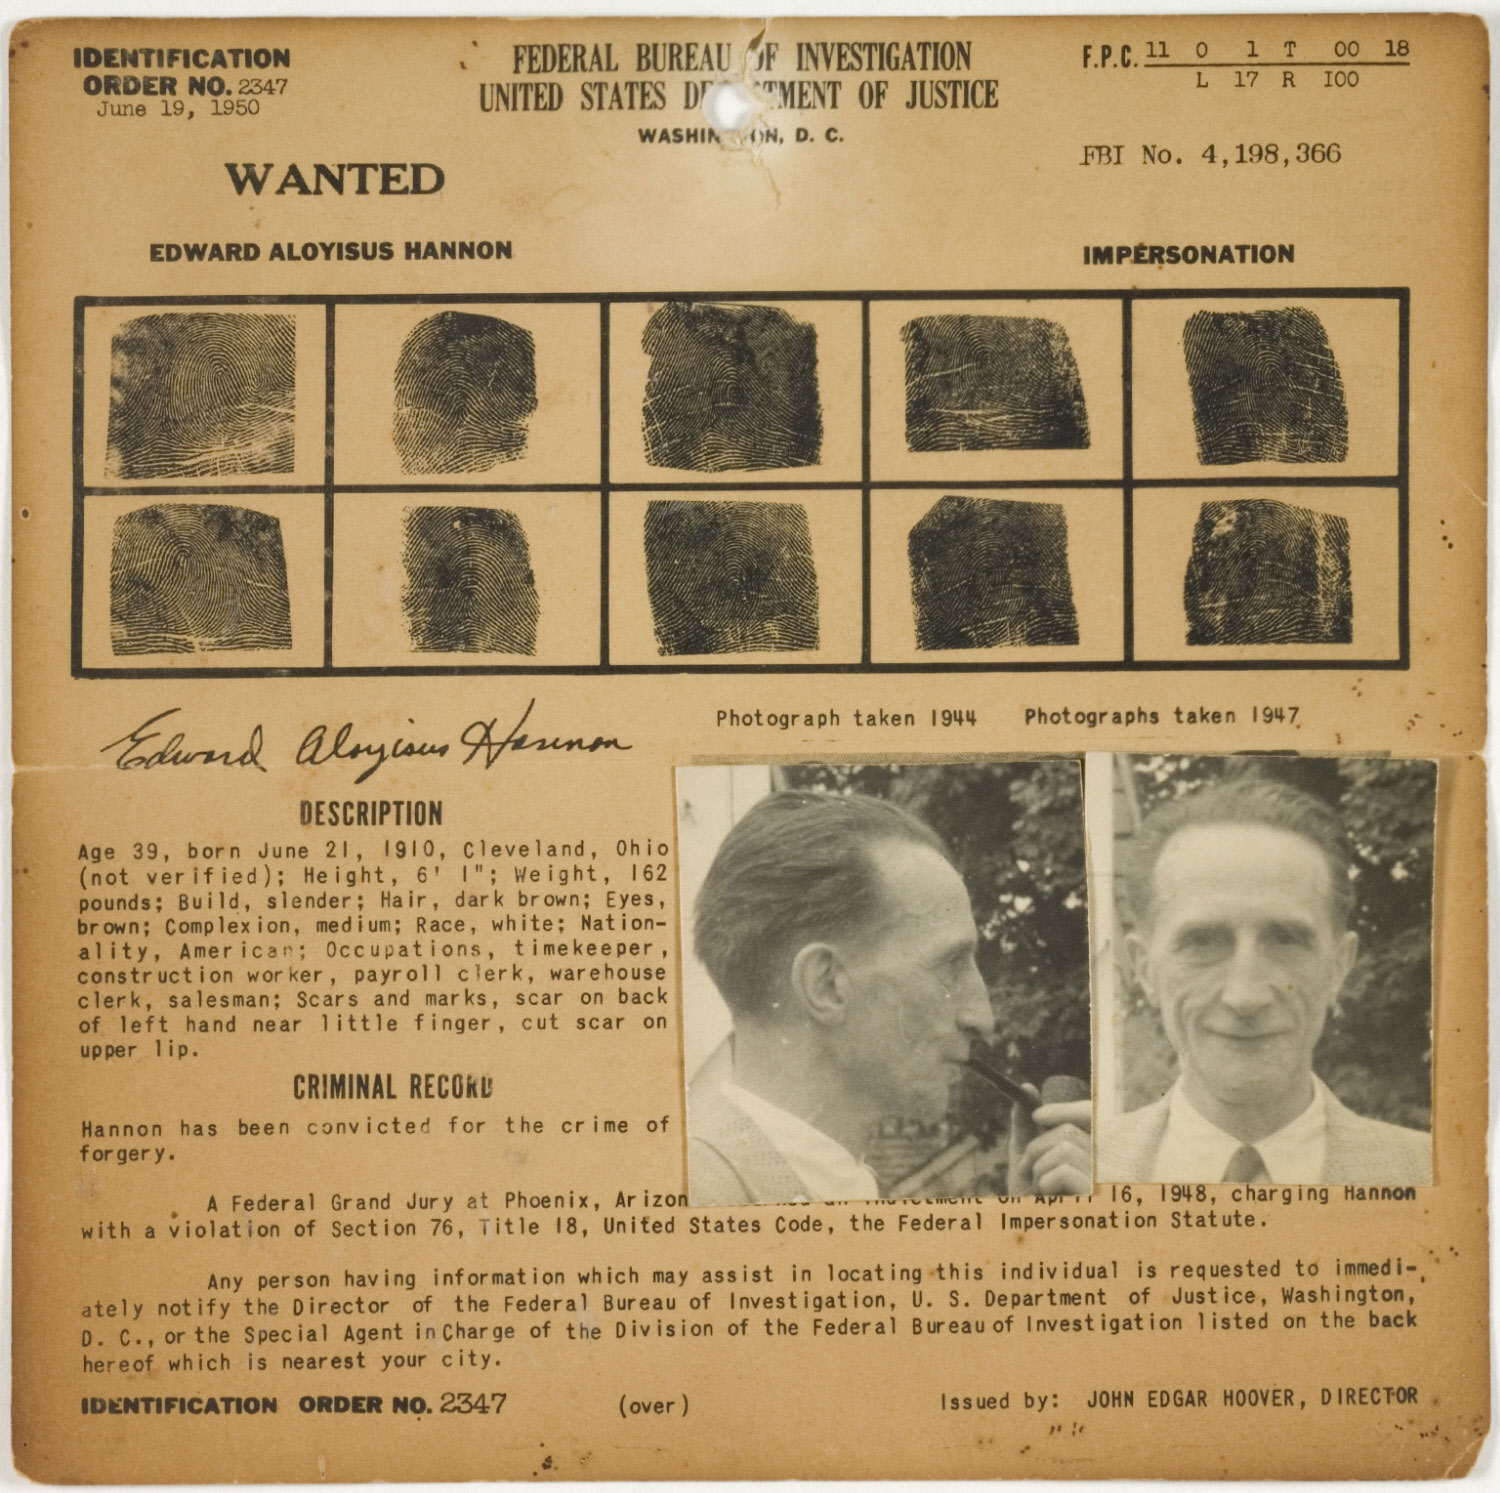 FBI Wanted Notice: Edward Aloyisus Hannon (Marcel Duchamp), Wanted for the Crime of Impersonation